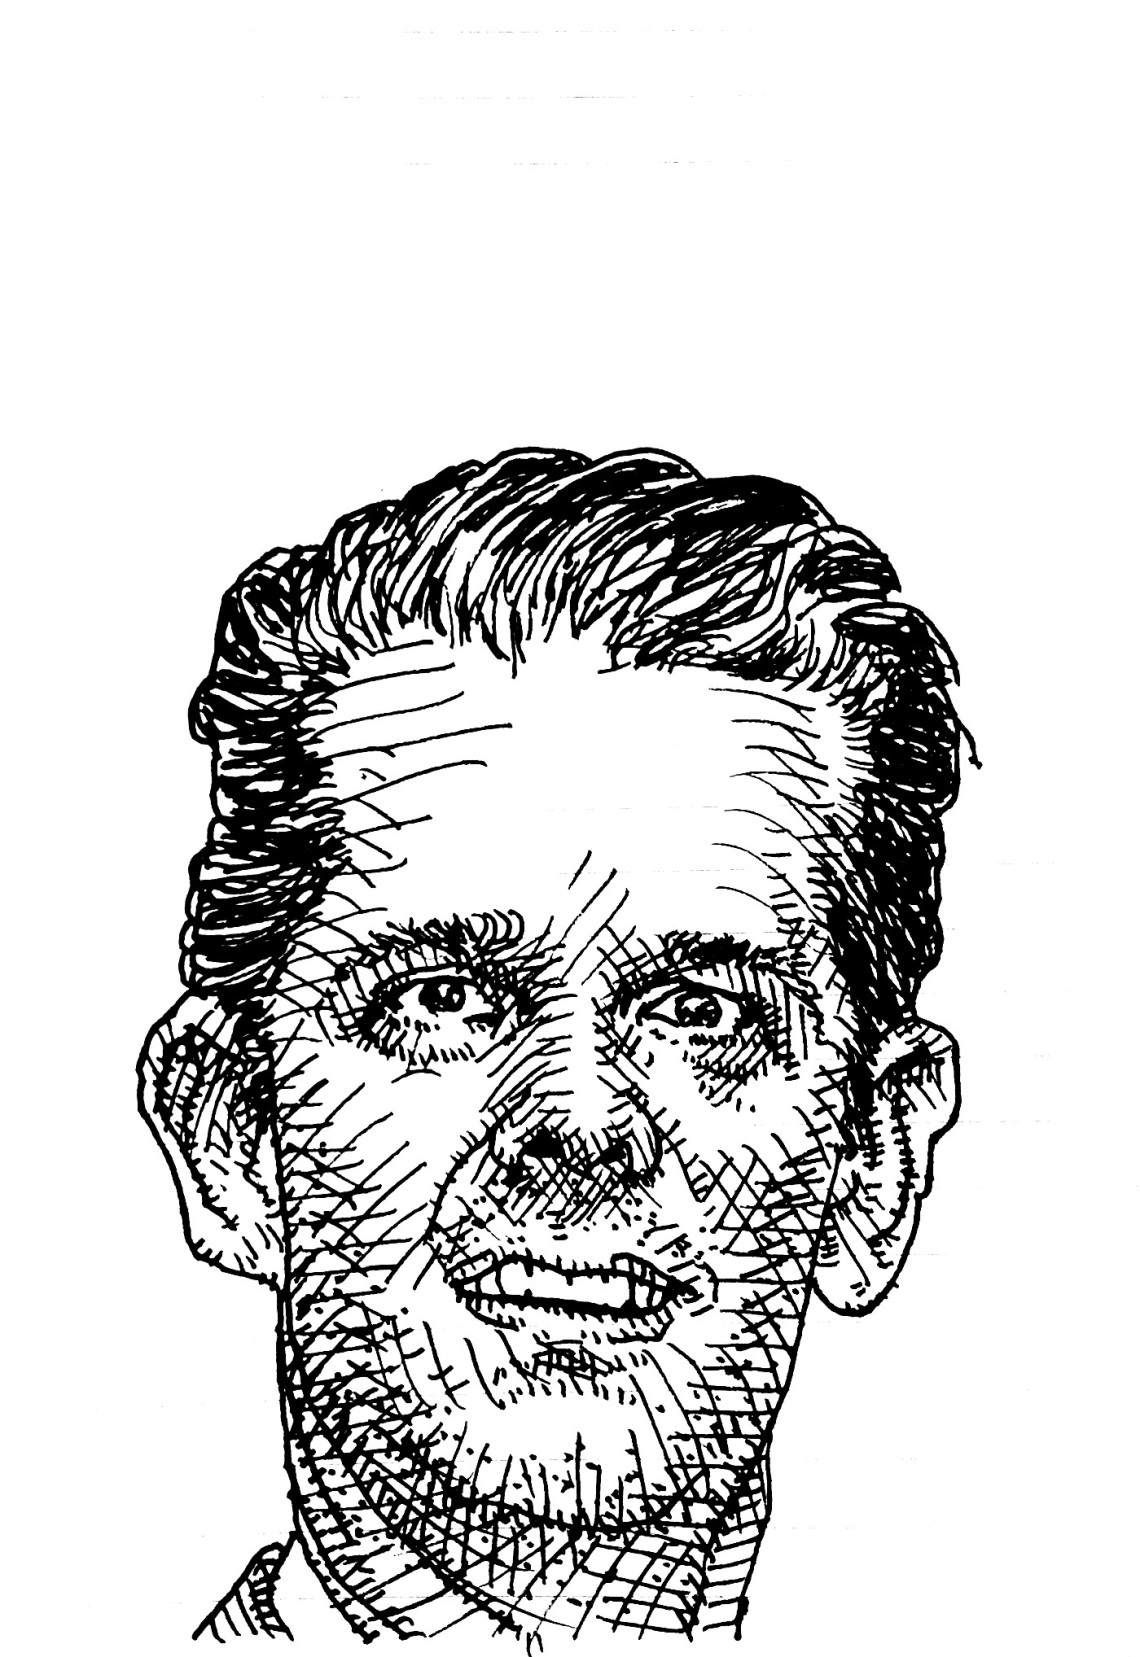 Donald Trump Jr. illustration